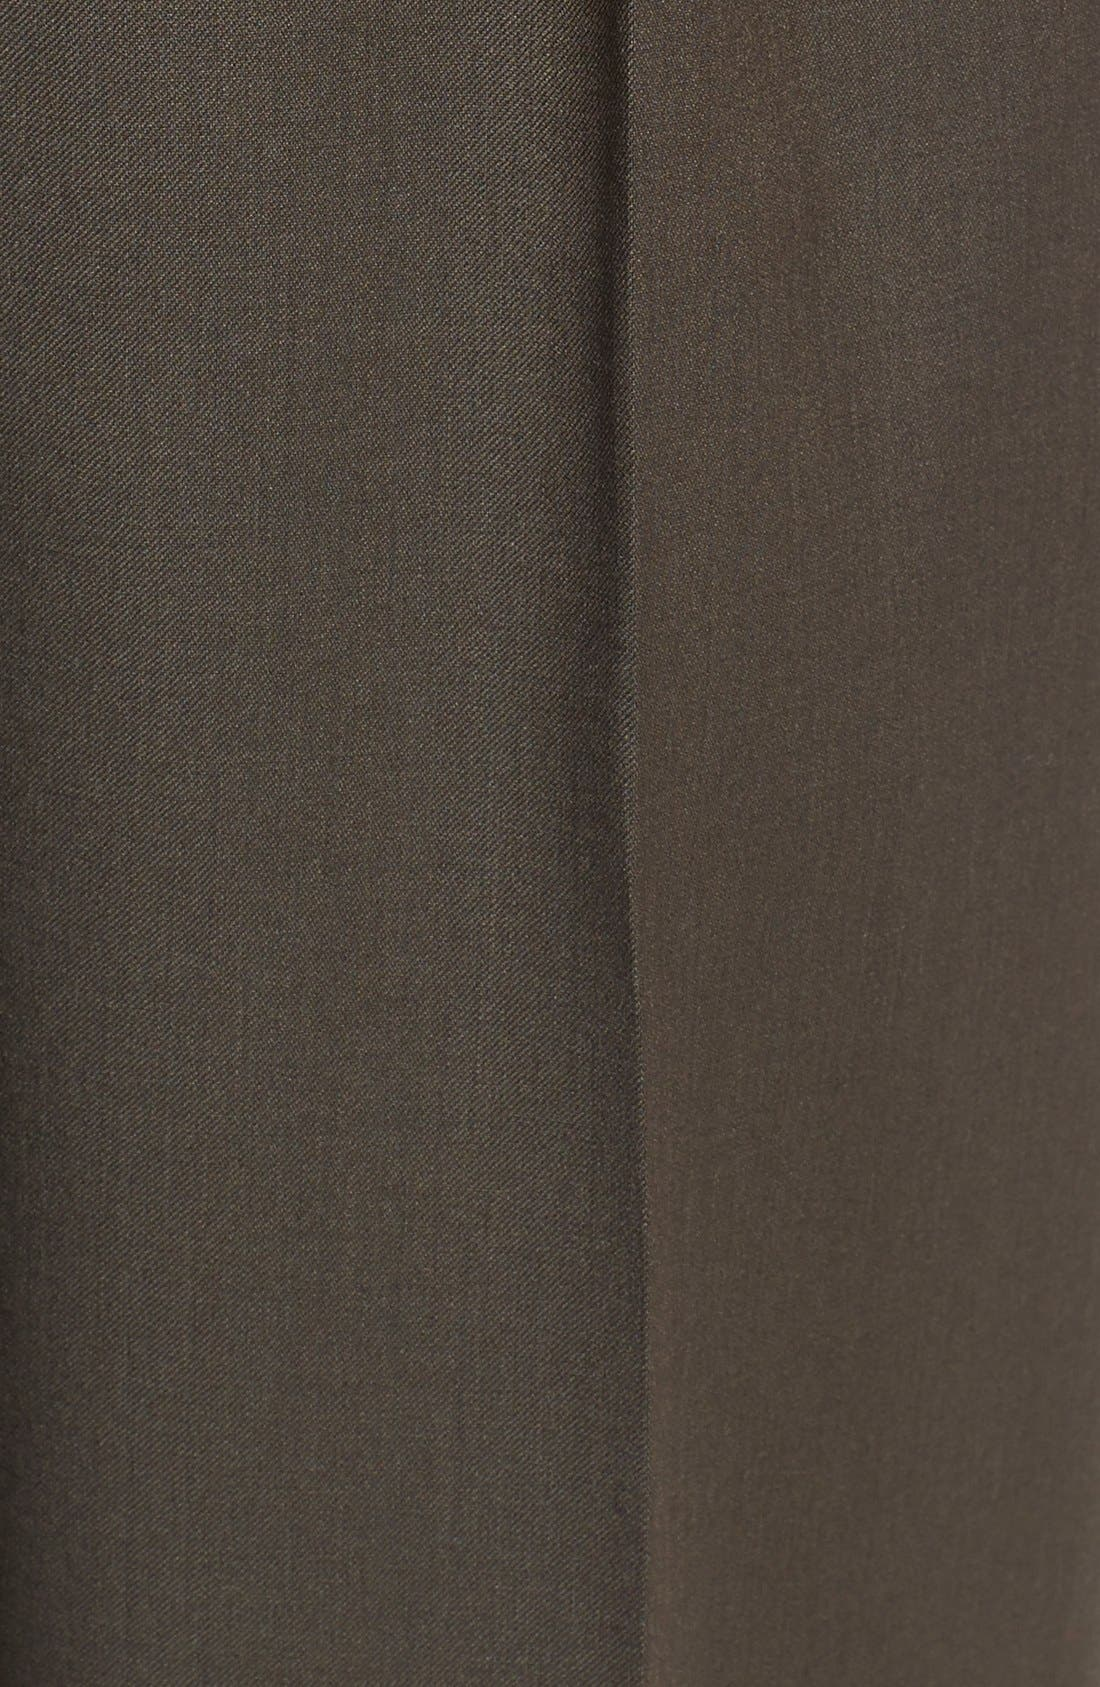 Pleated Solid Wool Trousers,                             Alternate thumbnail 63, color,